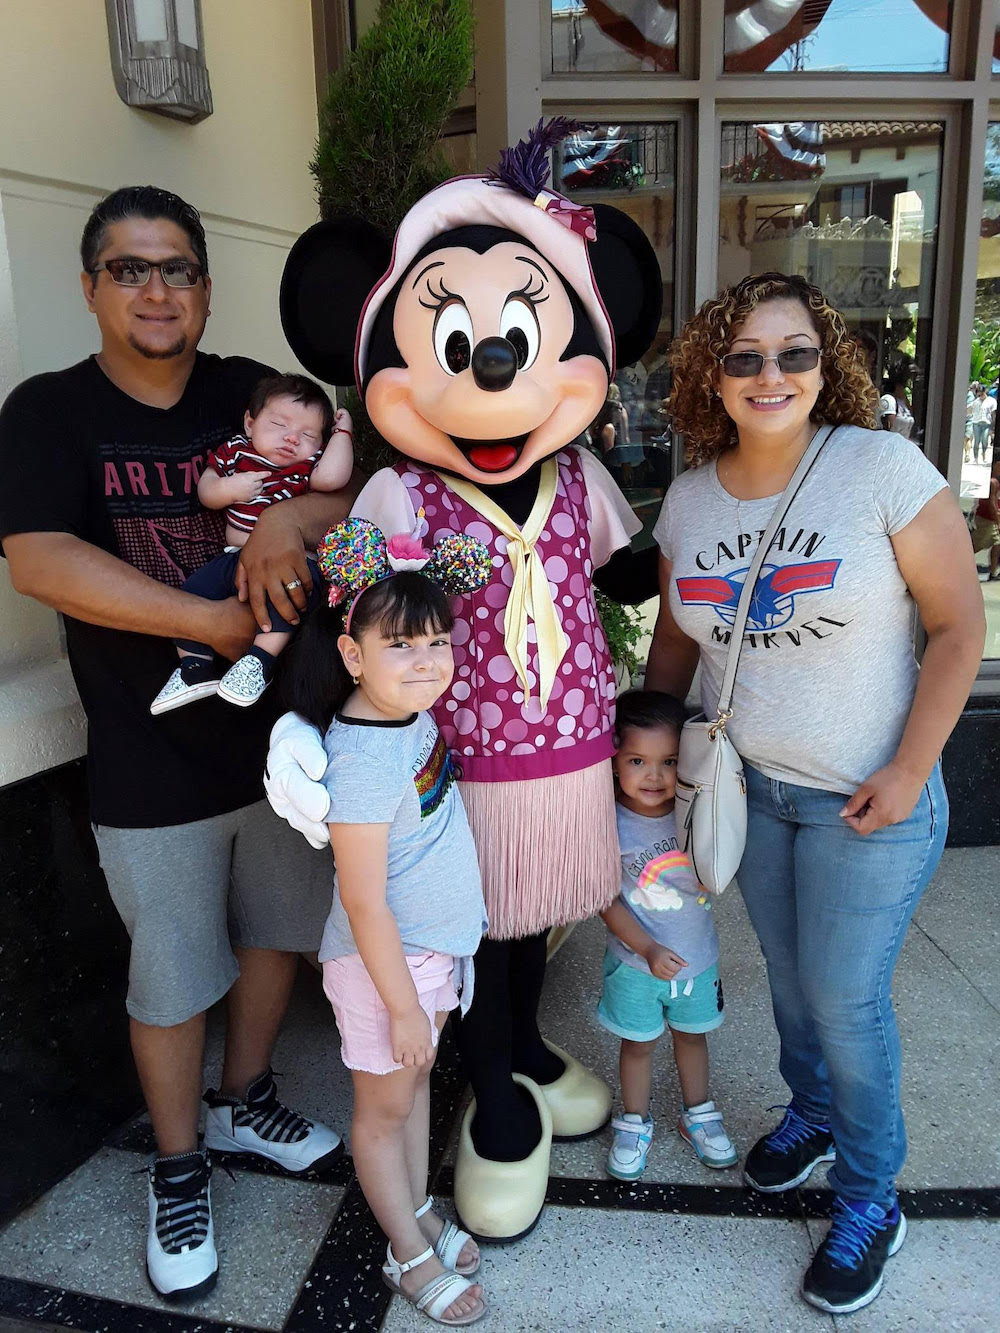 Anabel and her family at Disney Land with Mini Mouse